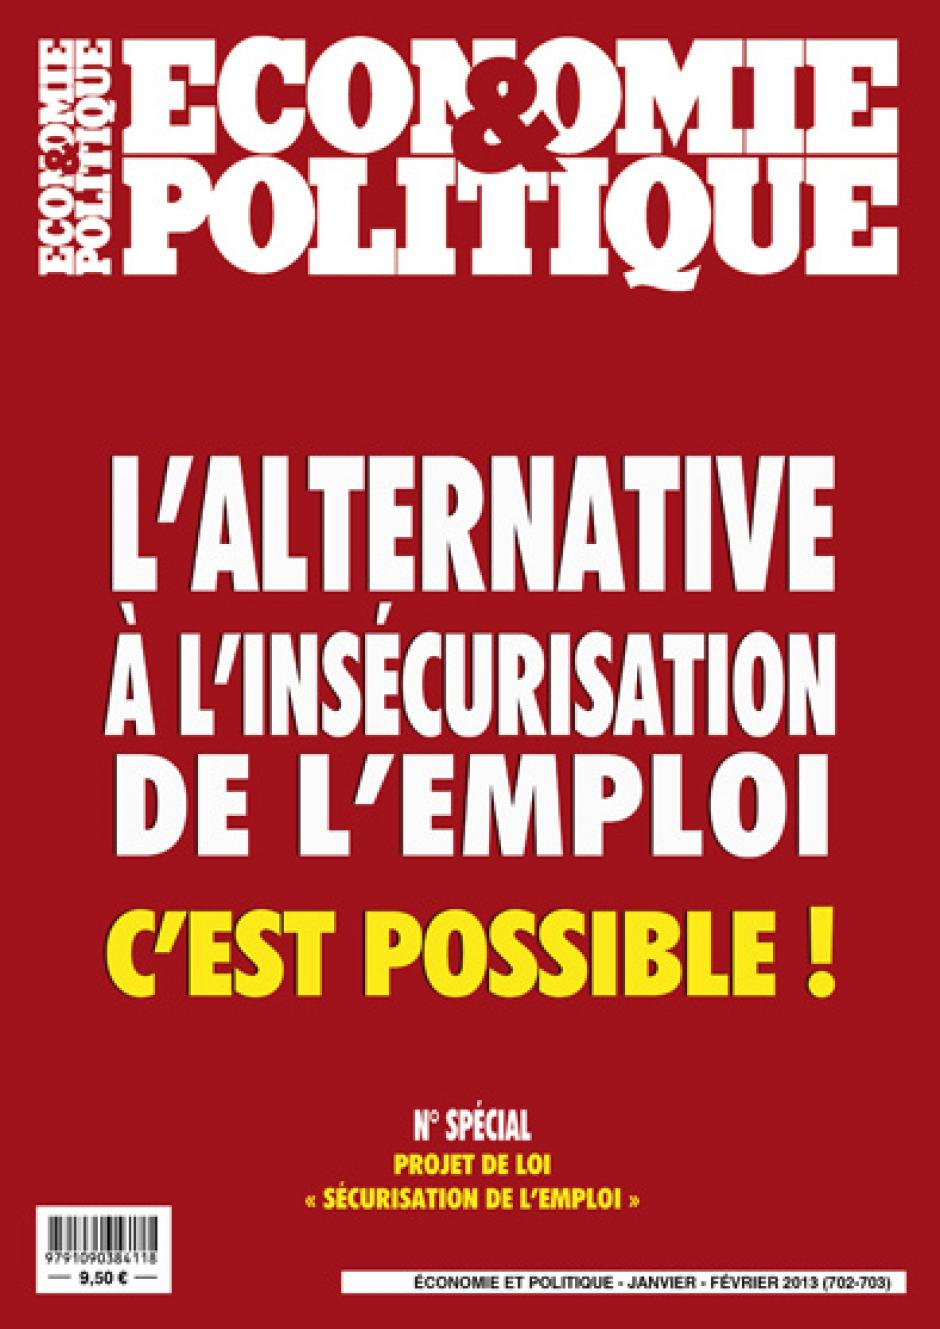 Economie & Politique de janvier-fvrier 2013